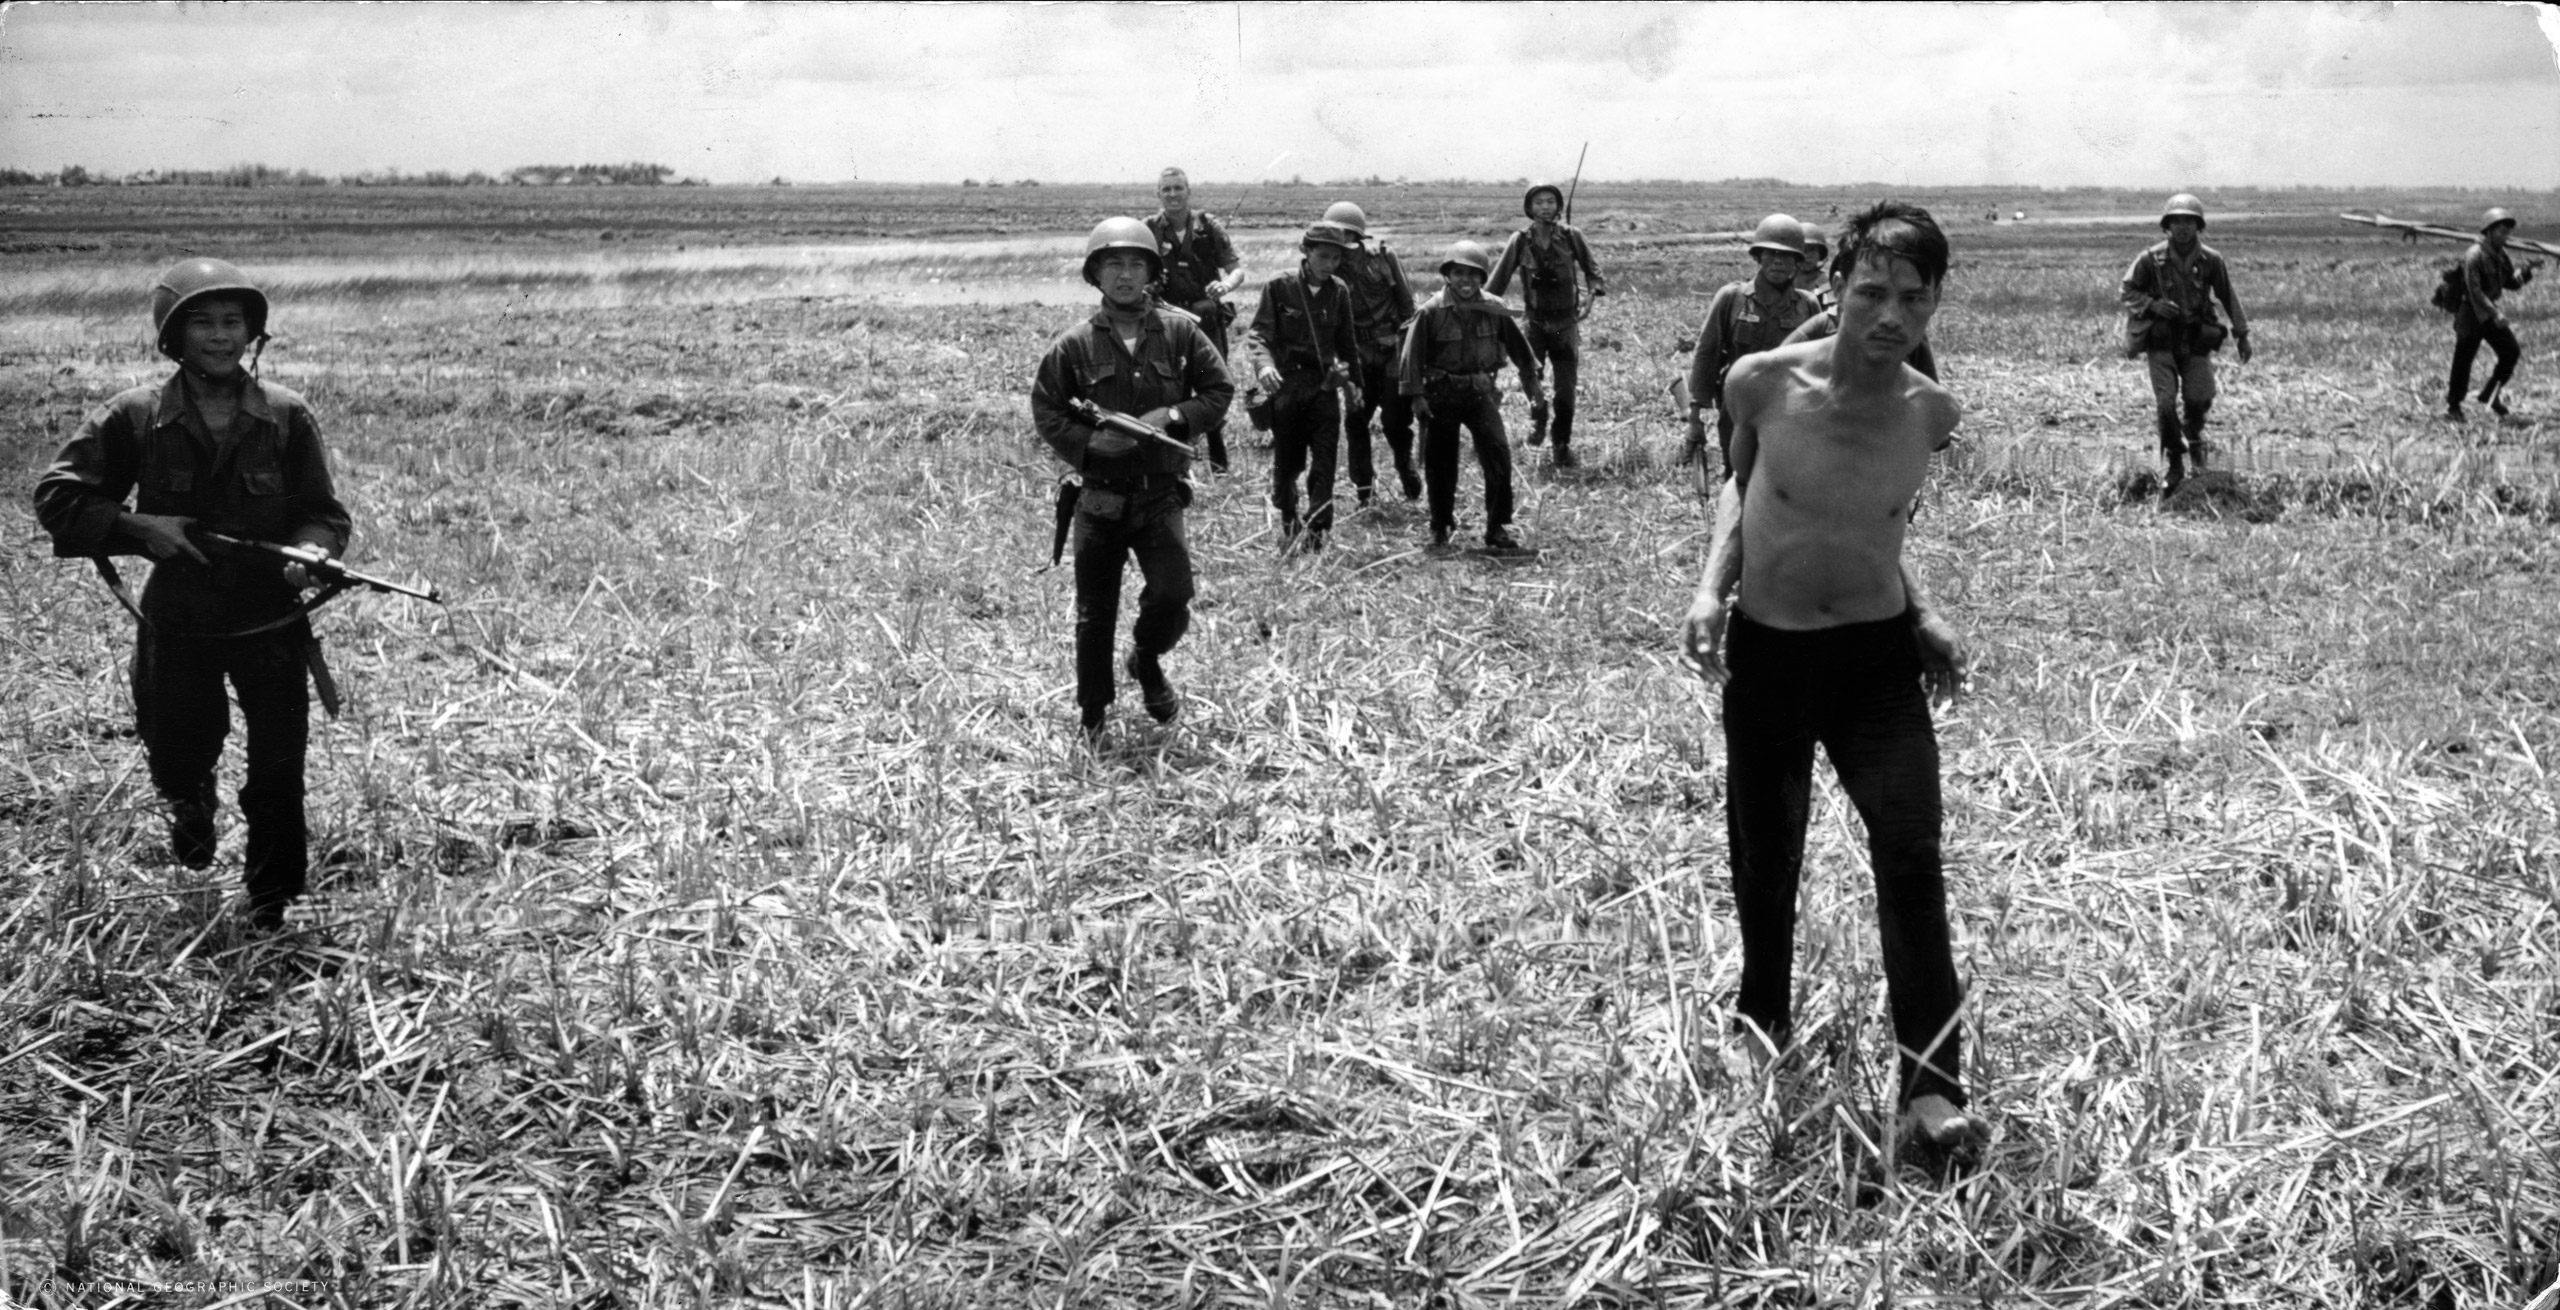 Vietnamese paratroopers escort a Vietcong suspect to a waiting helicopter after catching him with Communist propaganda, ca. 1961-1962.